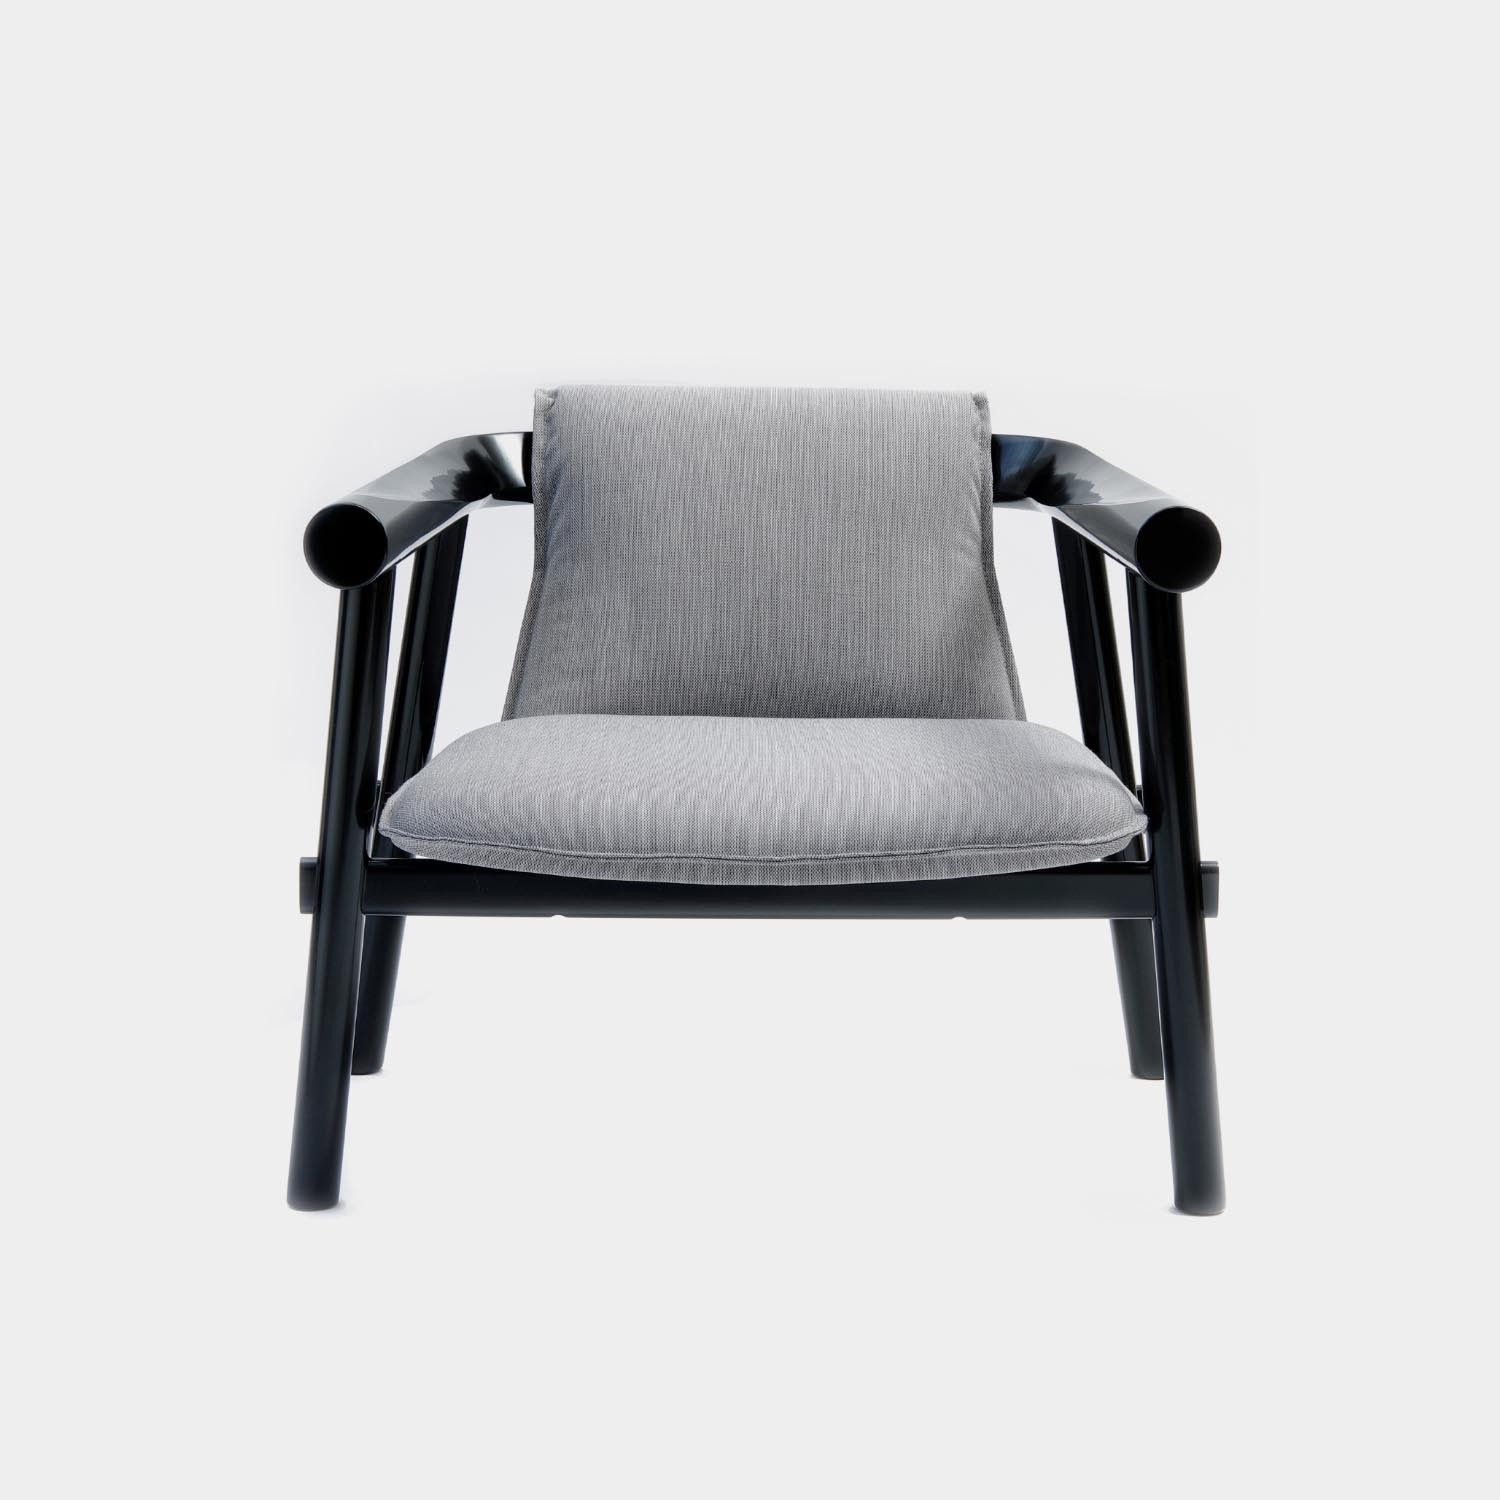 Altay Armchair, Black Structure, Textile Upholstery